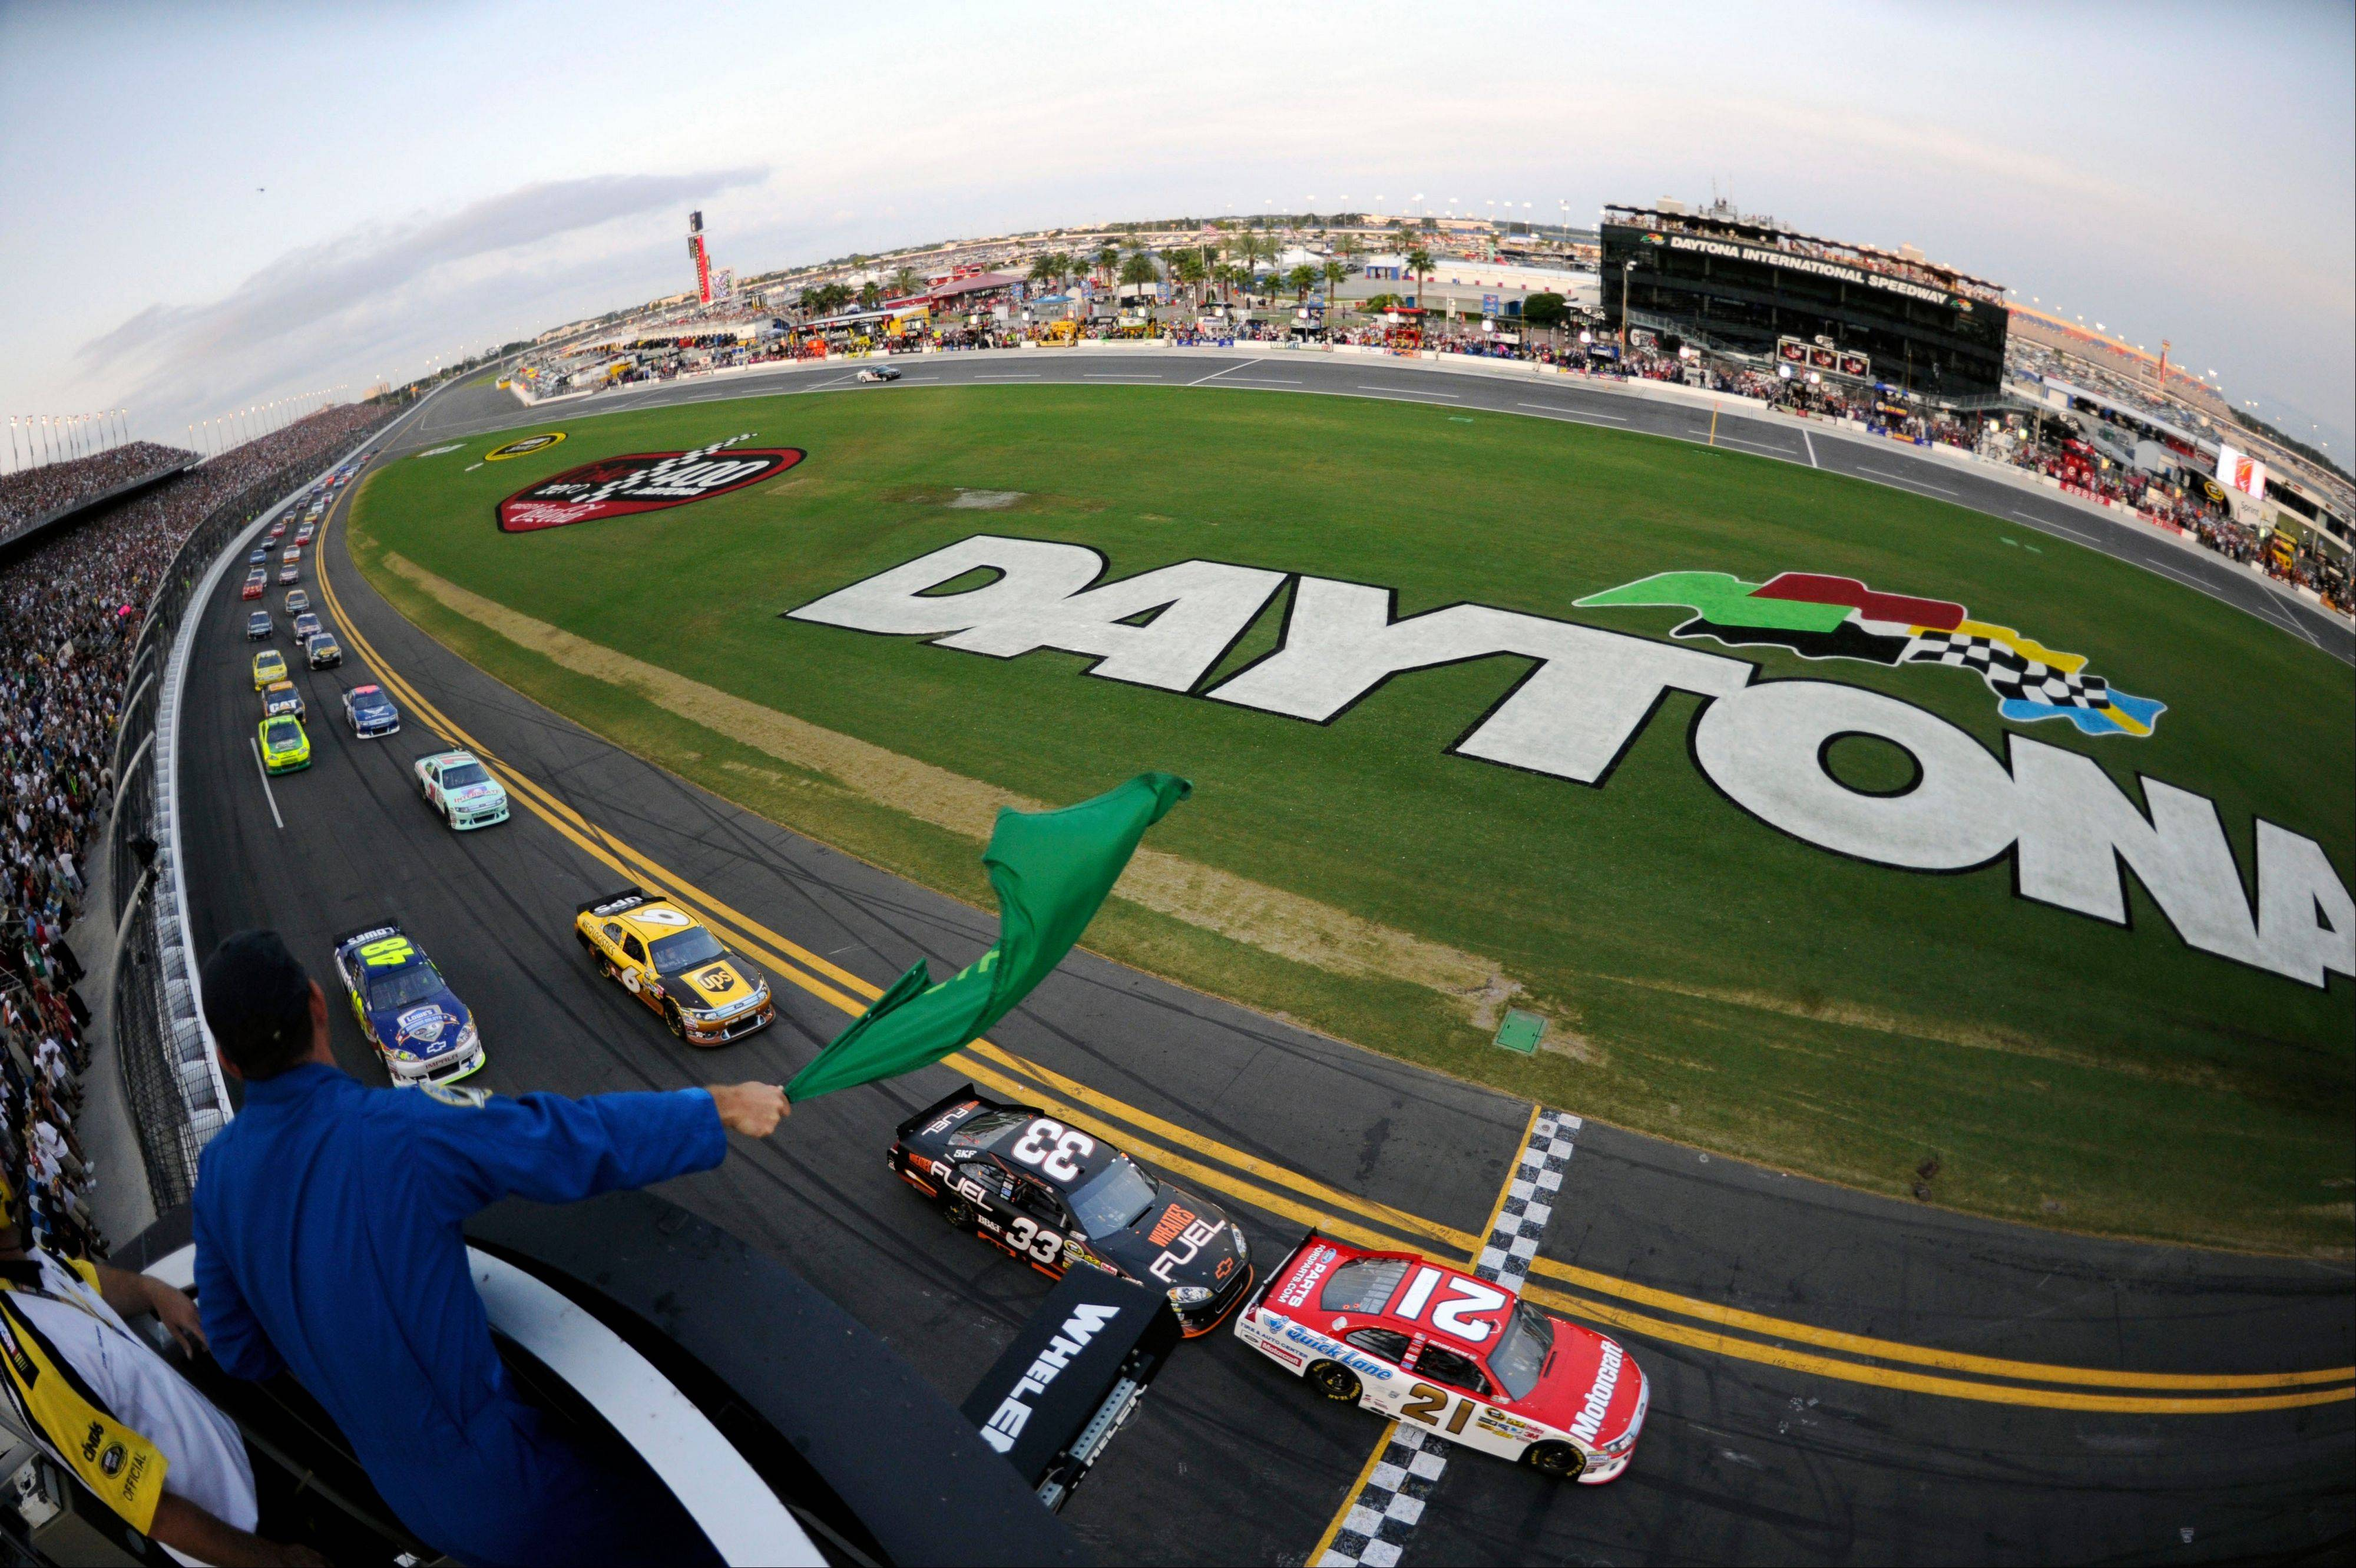 In this image made with a fisheye lens, NASA astronaut Tony Antonelli, left, waves the green flag to start the Coke Zero 400 NASCAR auto race at Daytona International Speedway in Daytona Beach, Fla., Saturday.